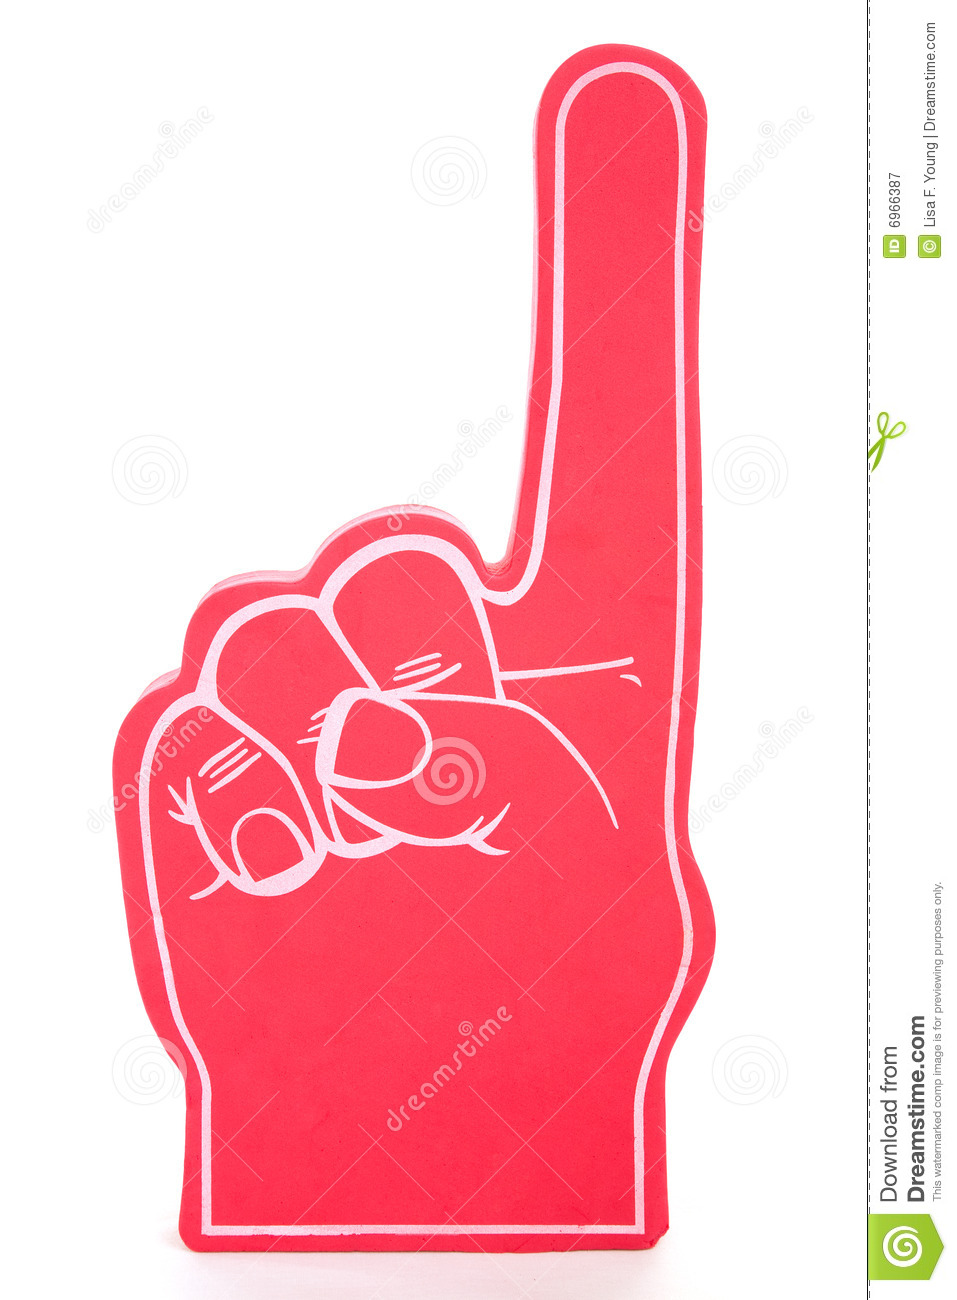 Number 1 finger clipart clipart black and white download Foam Finger Clipart - Clipart Kid clipart black and white download